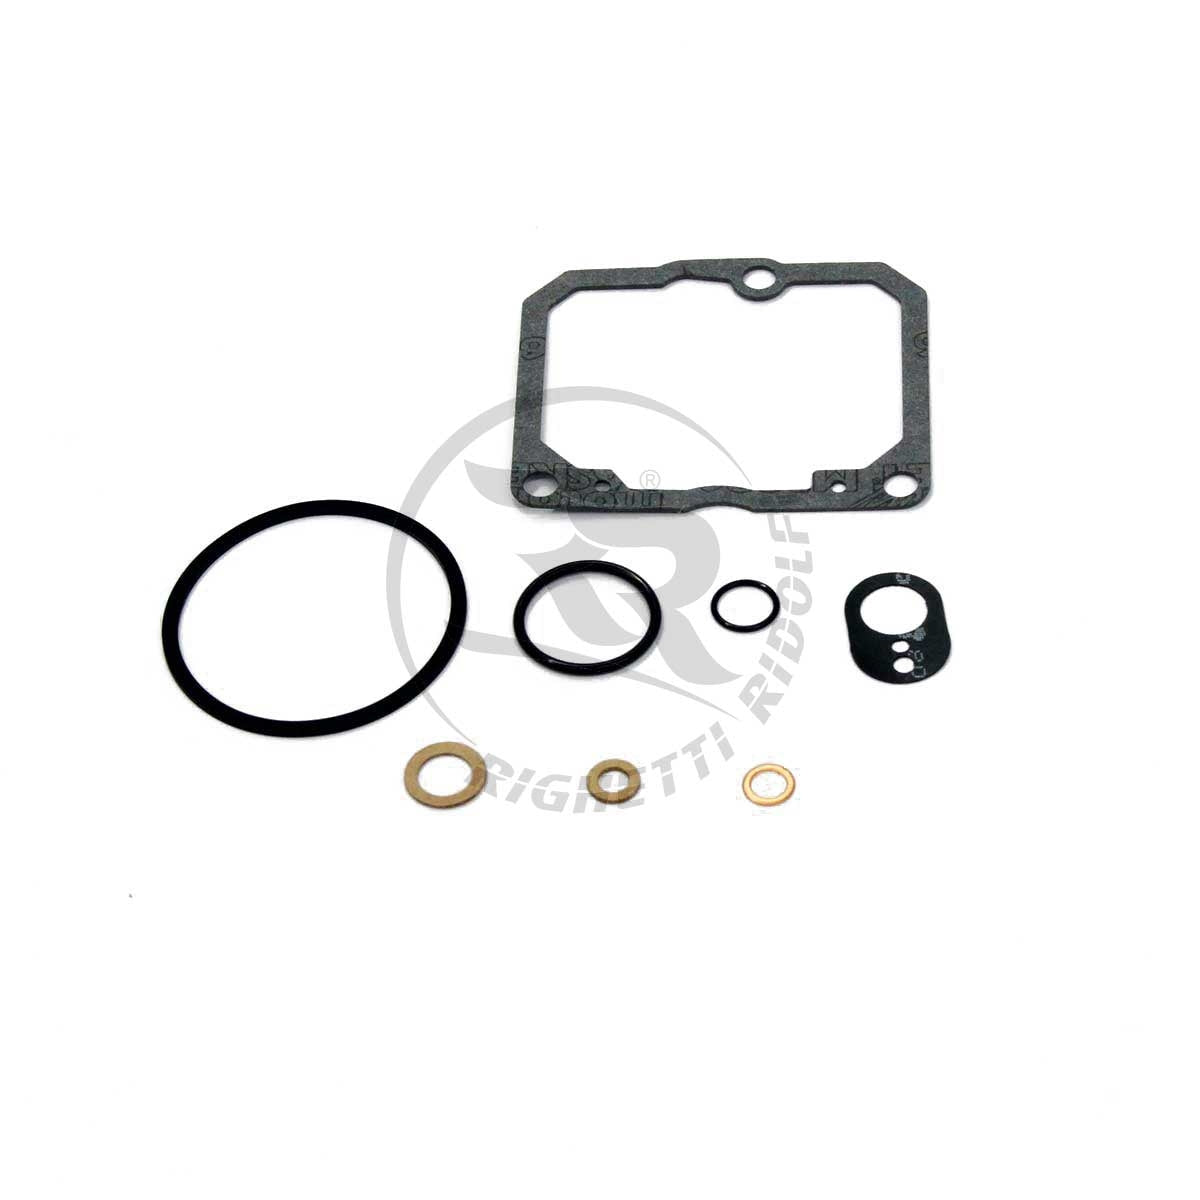 GASKET SET 52612 DELL'ORTO (53)